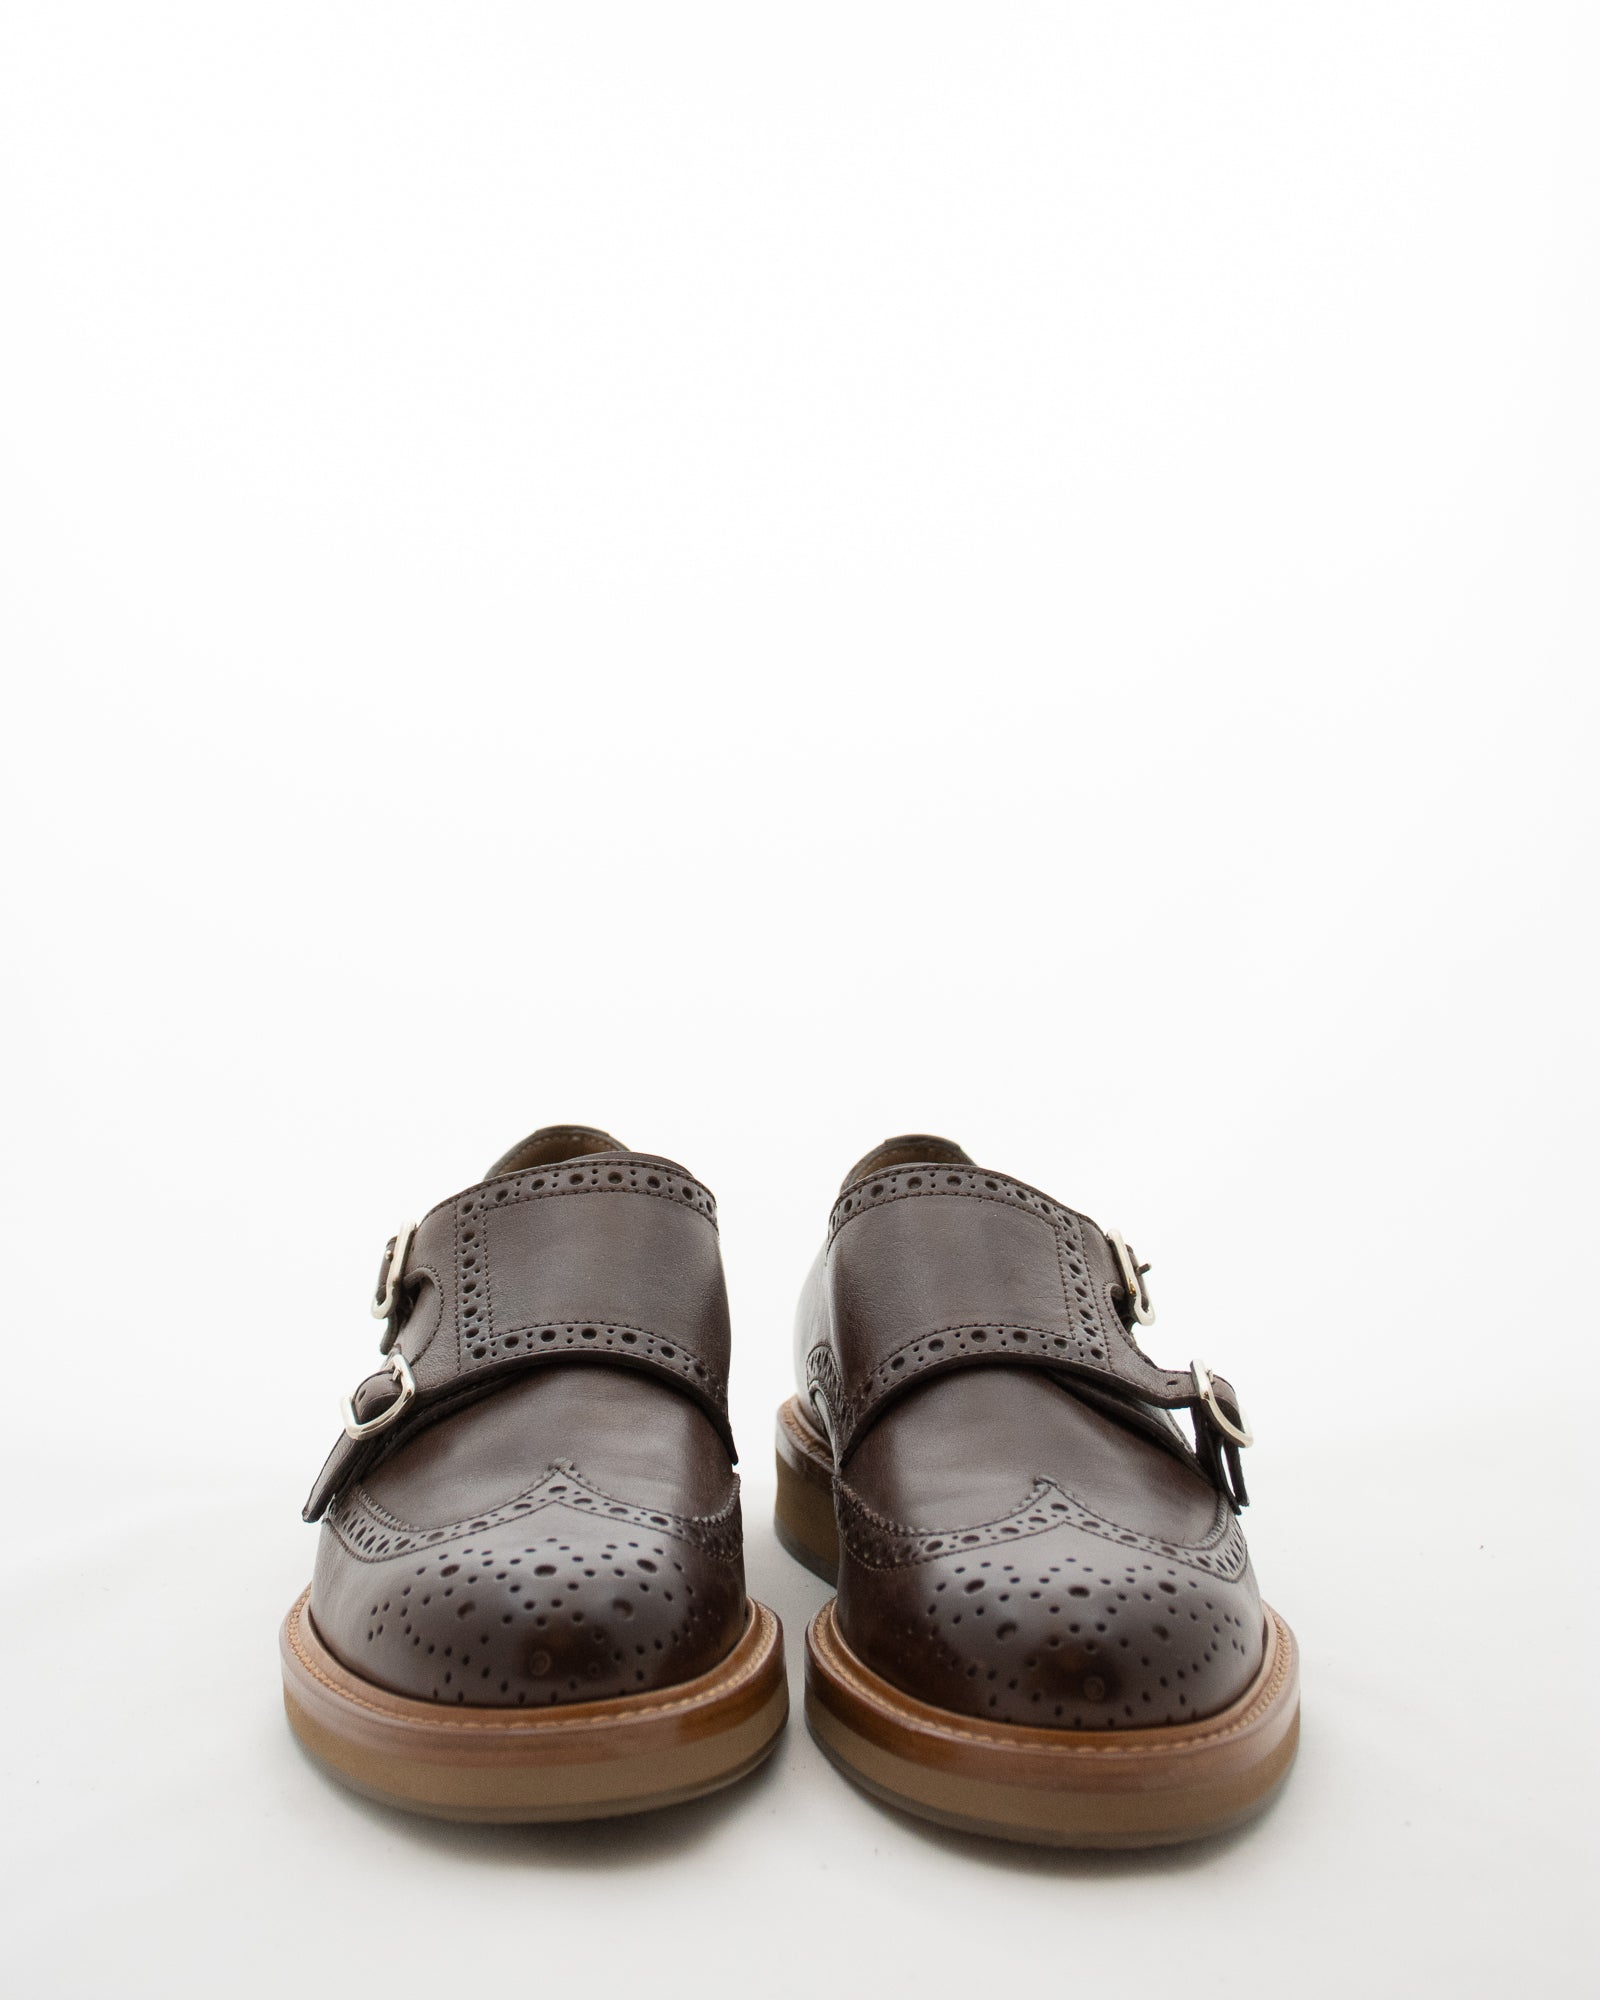 BRUNELLO CUCINELLI Monk Strap Brogue